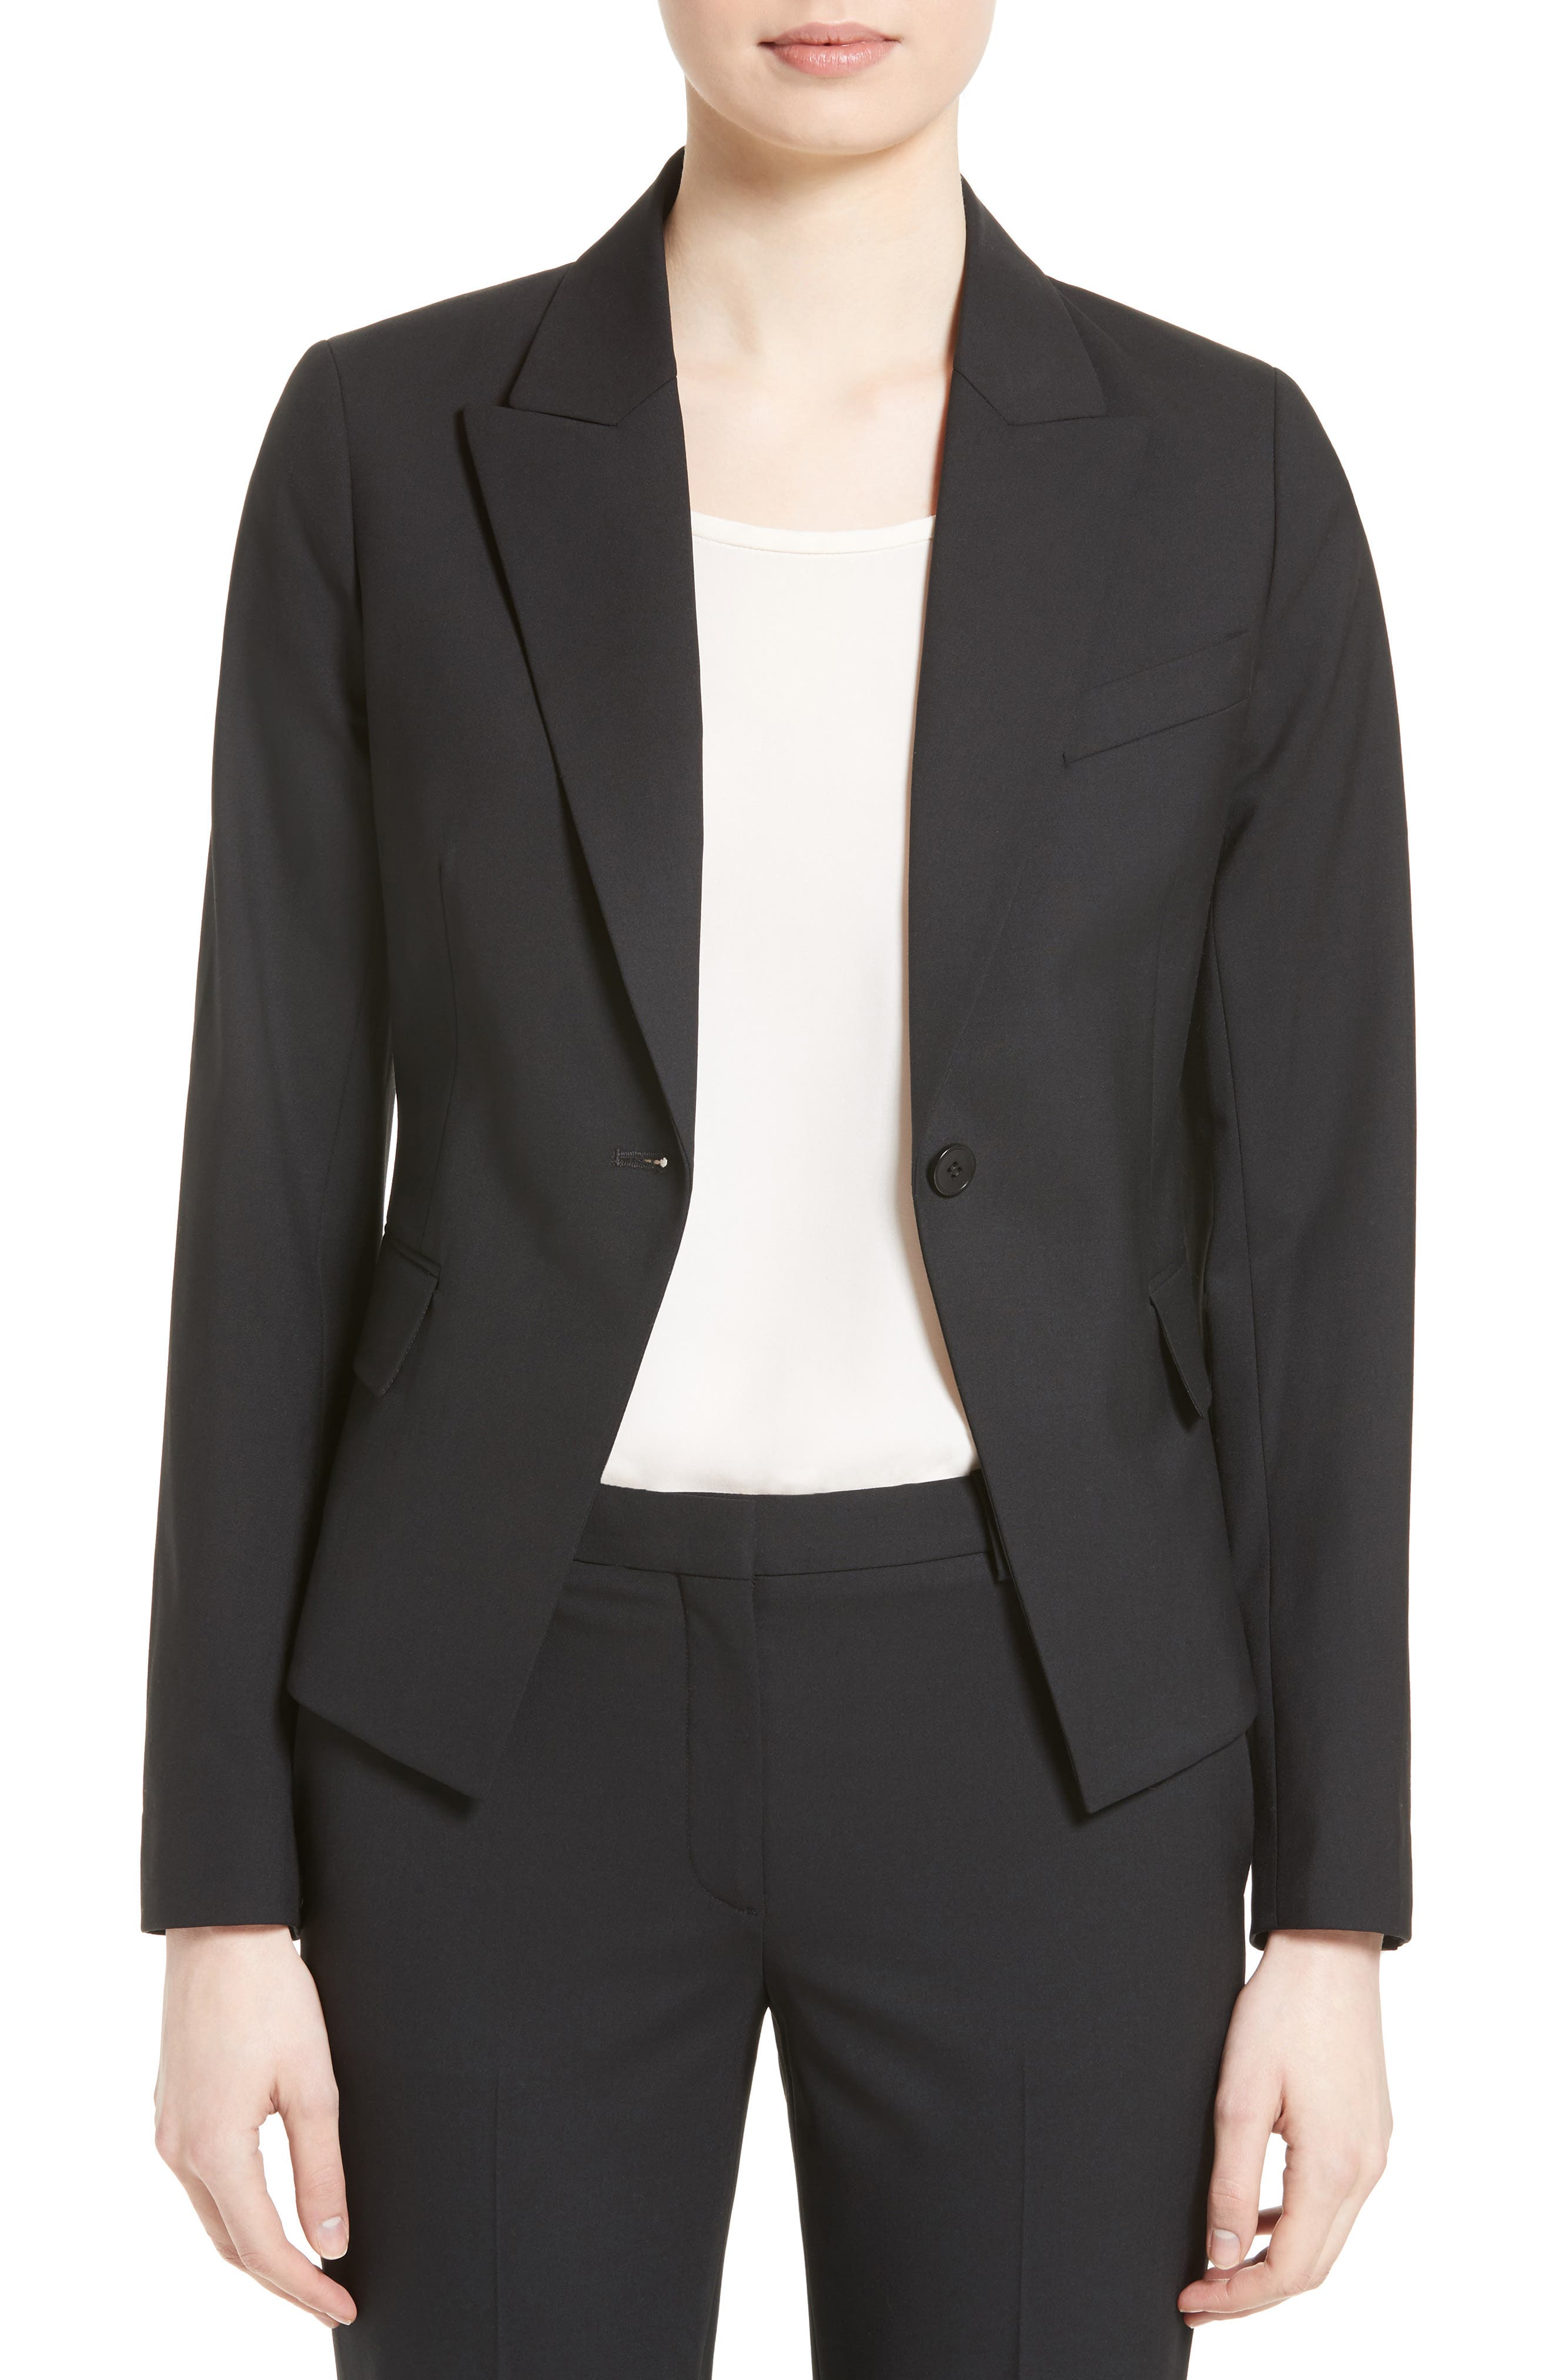 THEORY Brince B Good Wool Suit Jacket, Main, color, BLACK